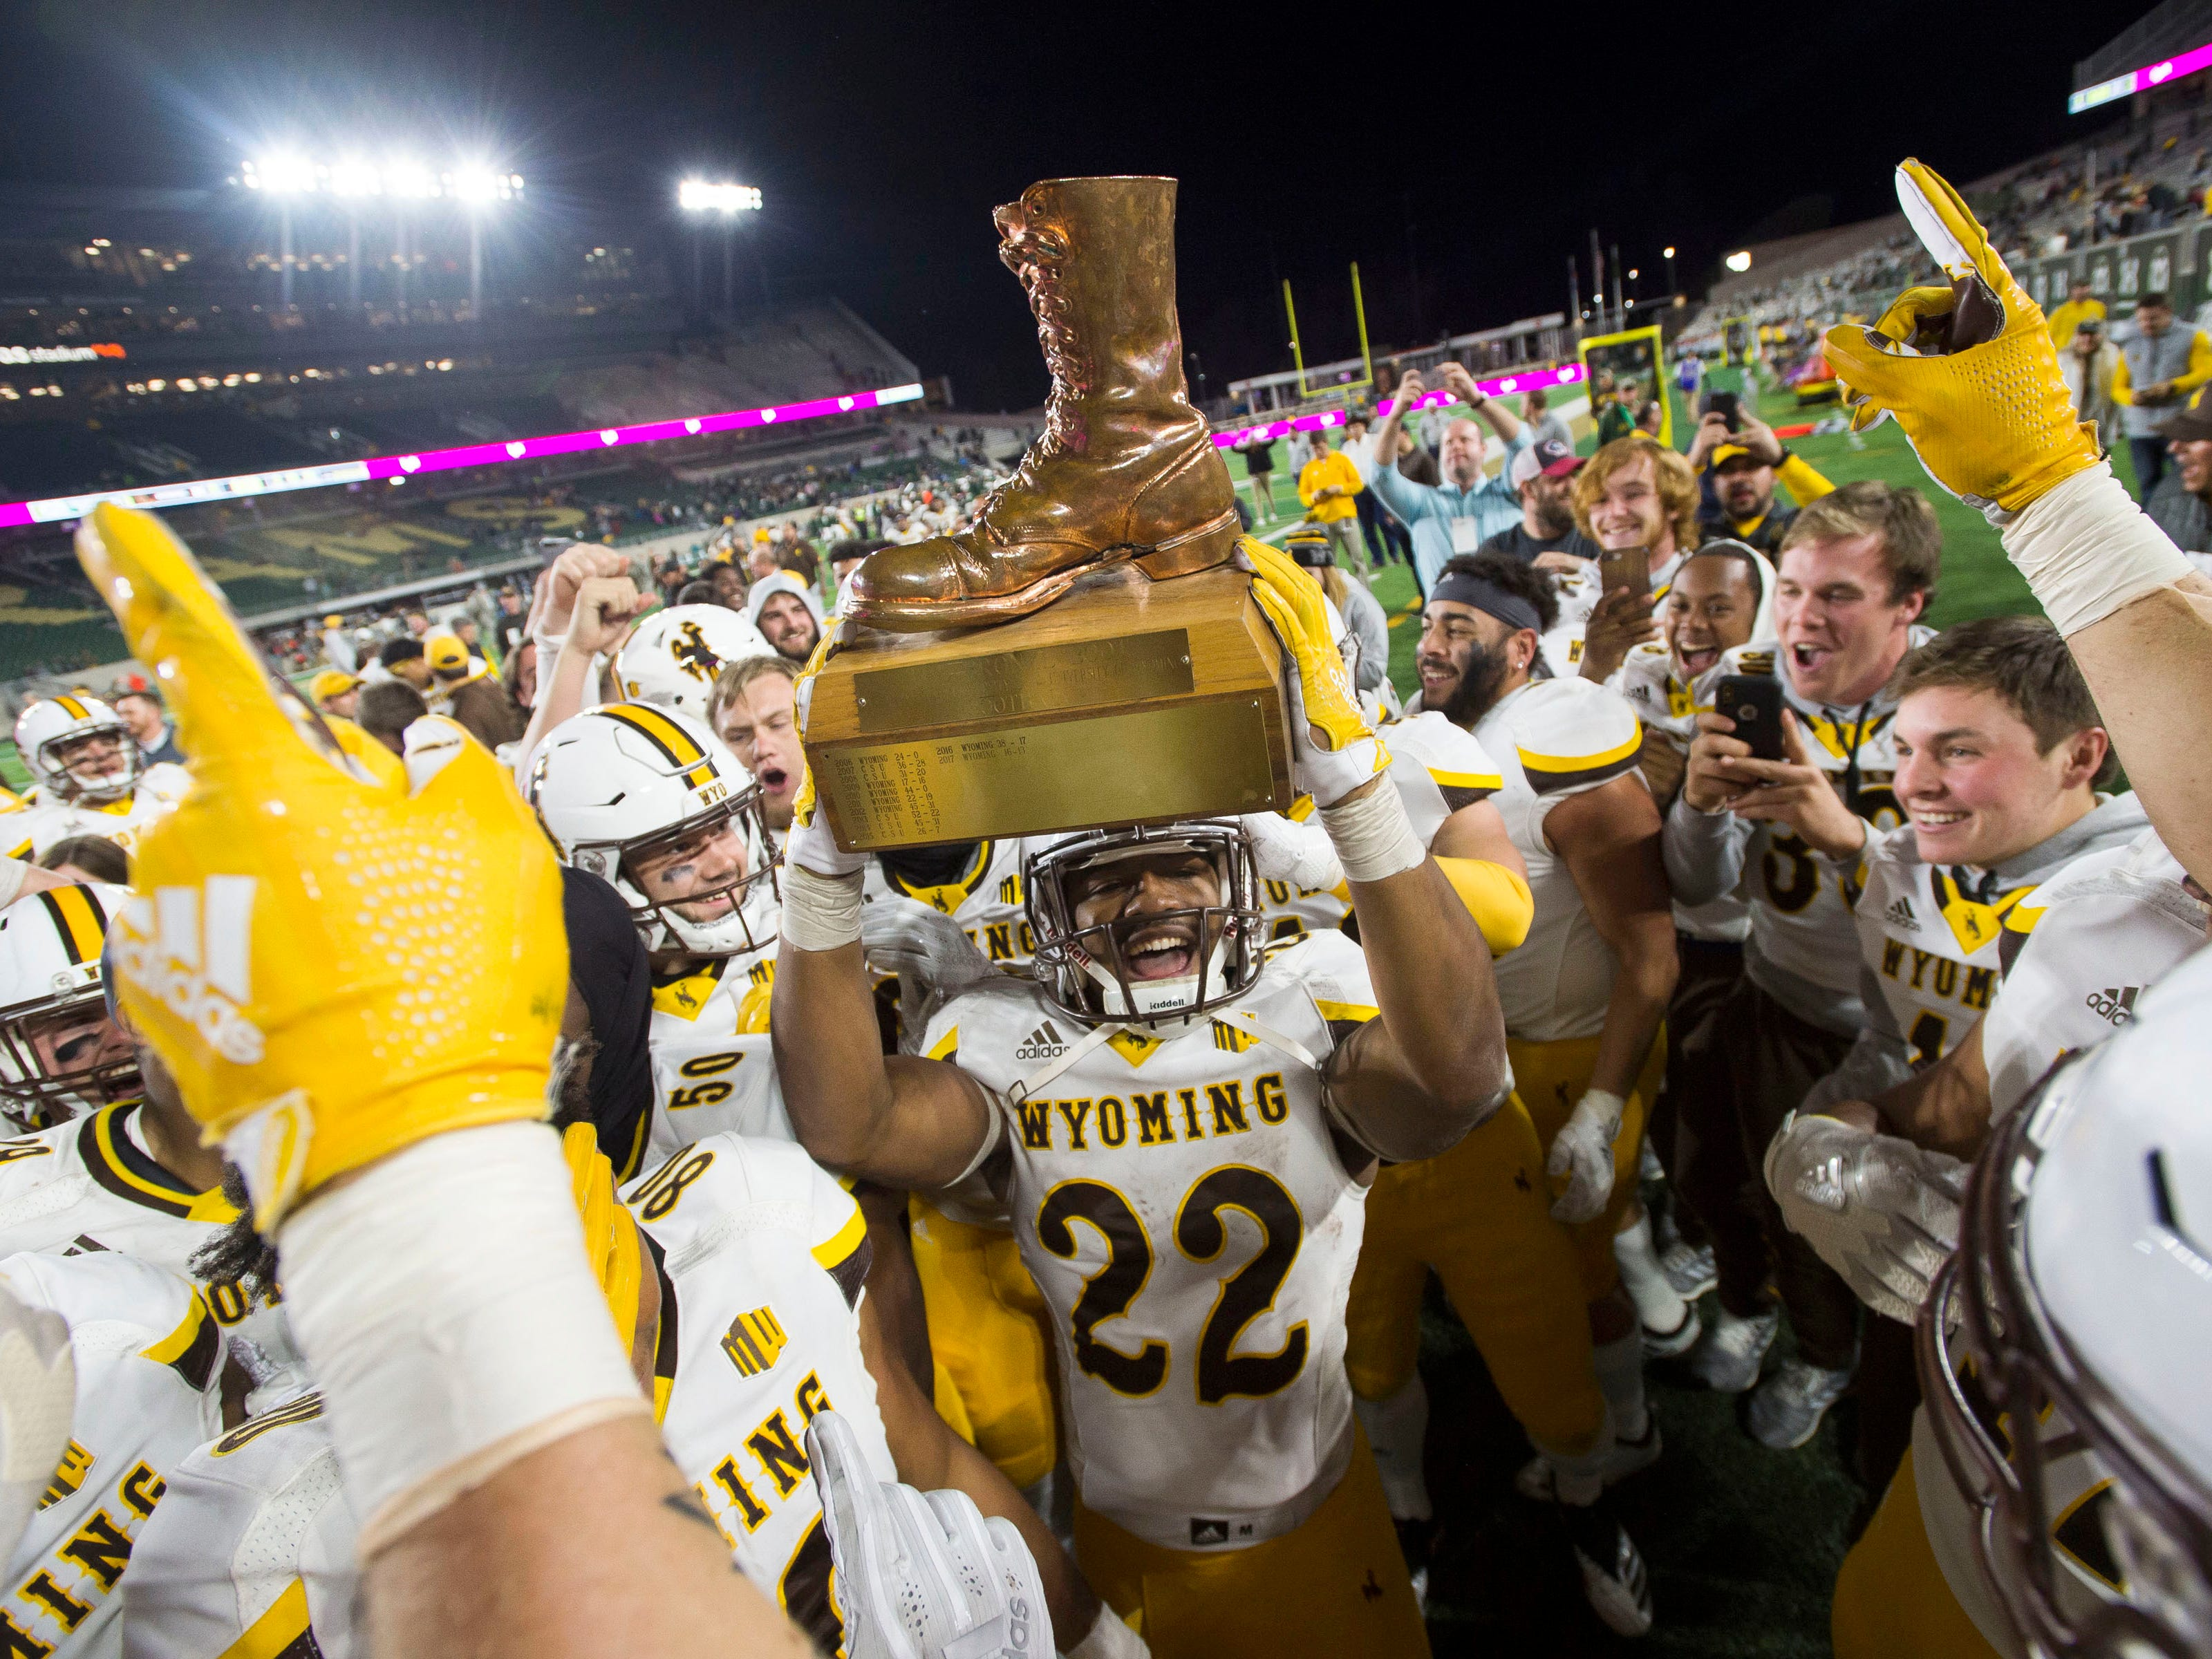 Bronze Boot: Wyoming running back Nico Evans hoists up the Bronze Boot trophy after Wyoming defeated Colorado State, 34-21, to retain the award at Canvas Stadium in Fort Collins, Colo. on Oct. 26.